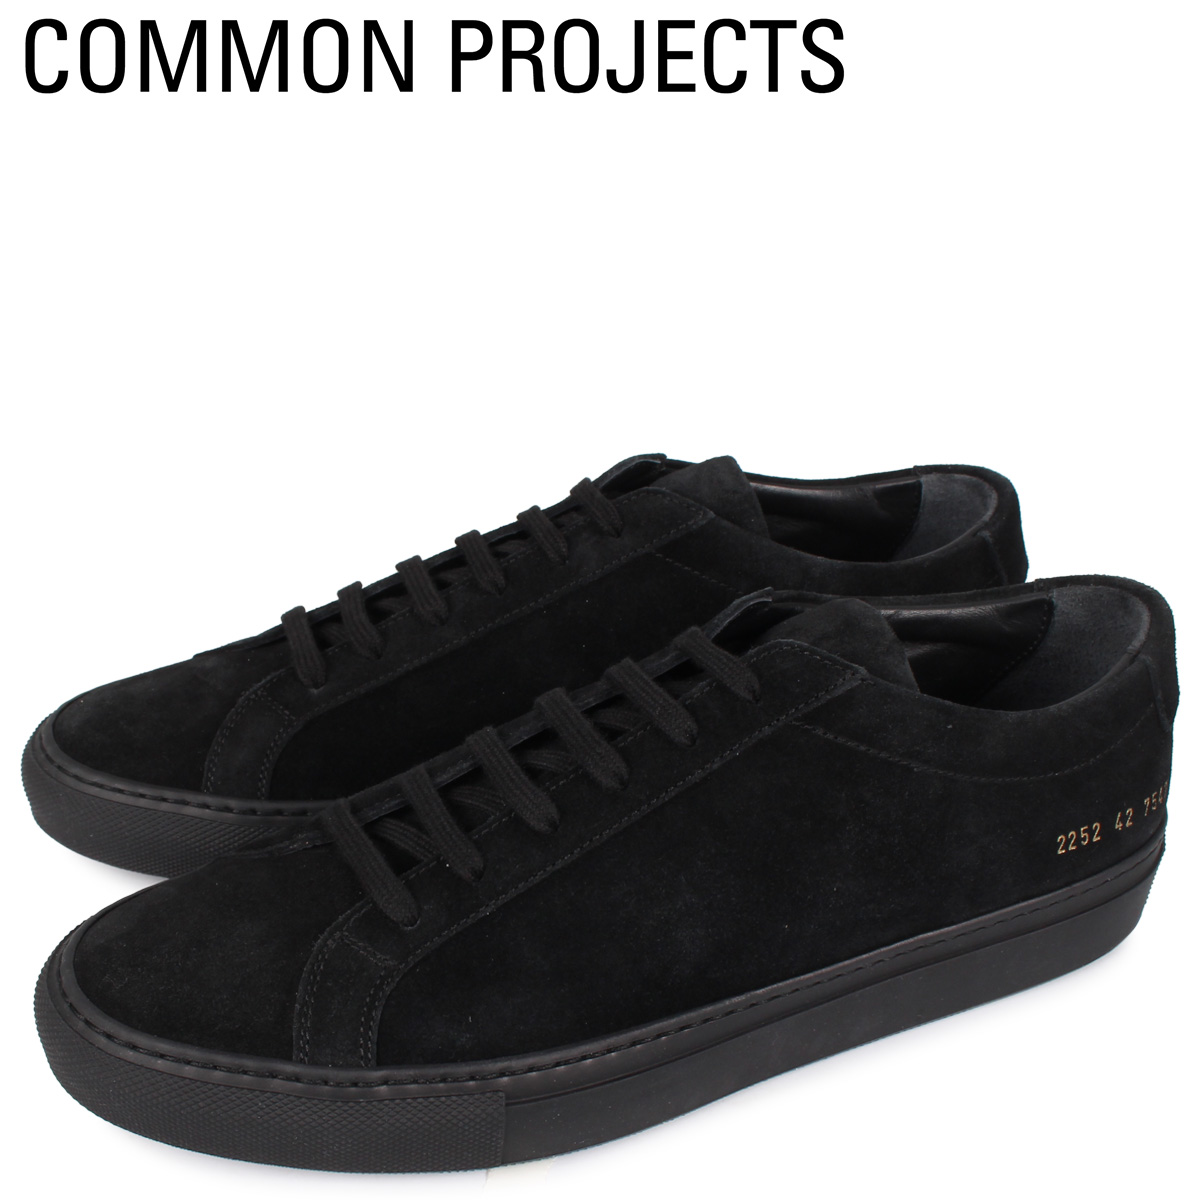 Common Projects コモンプロジェクト アキレス ロー スエード スニーカー メンズ ACHILLES LOW SUEDE ブラック 黒 2252-7547 [4/2新入荷]